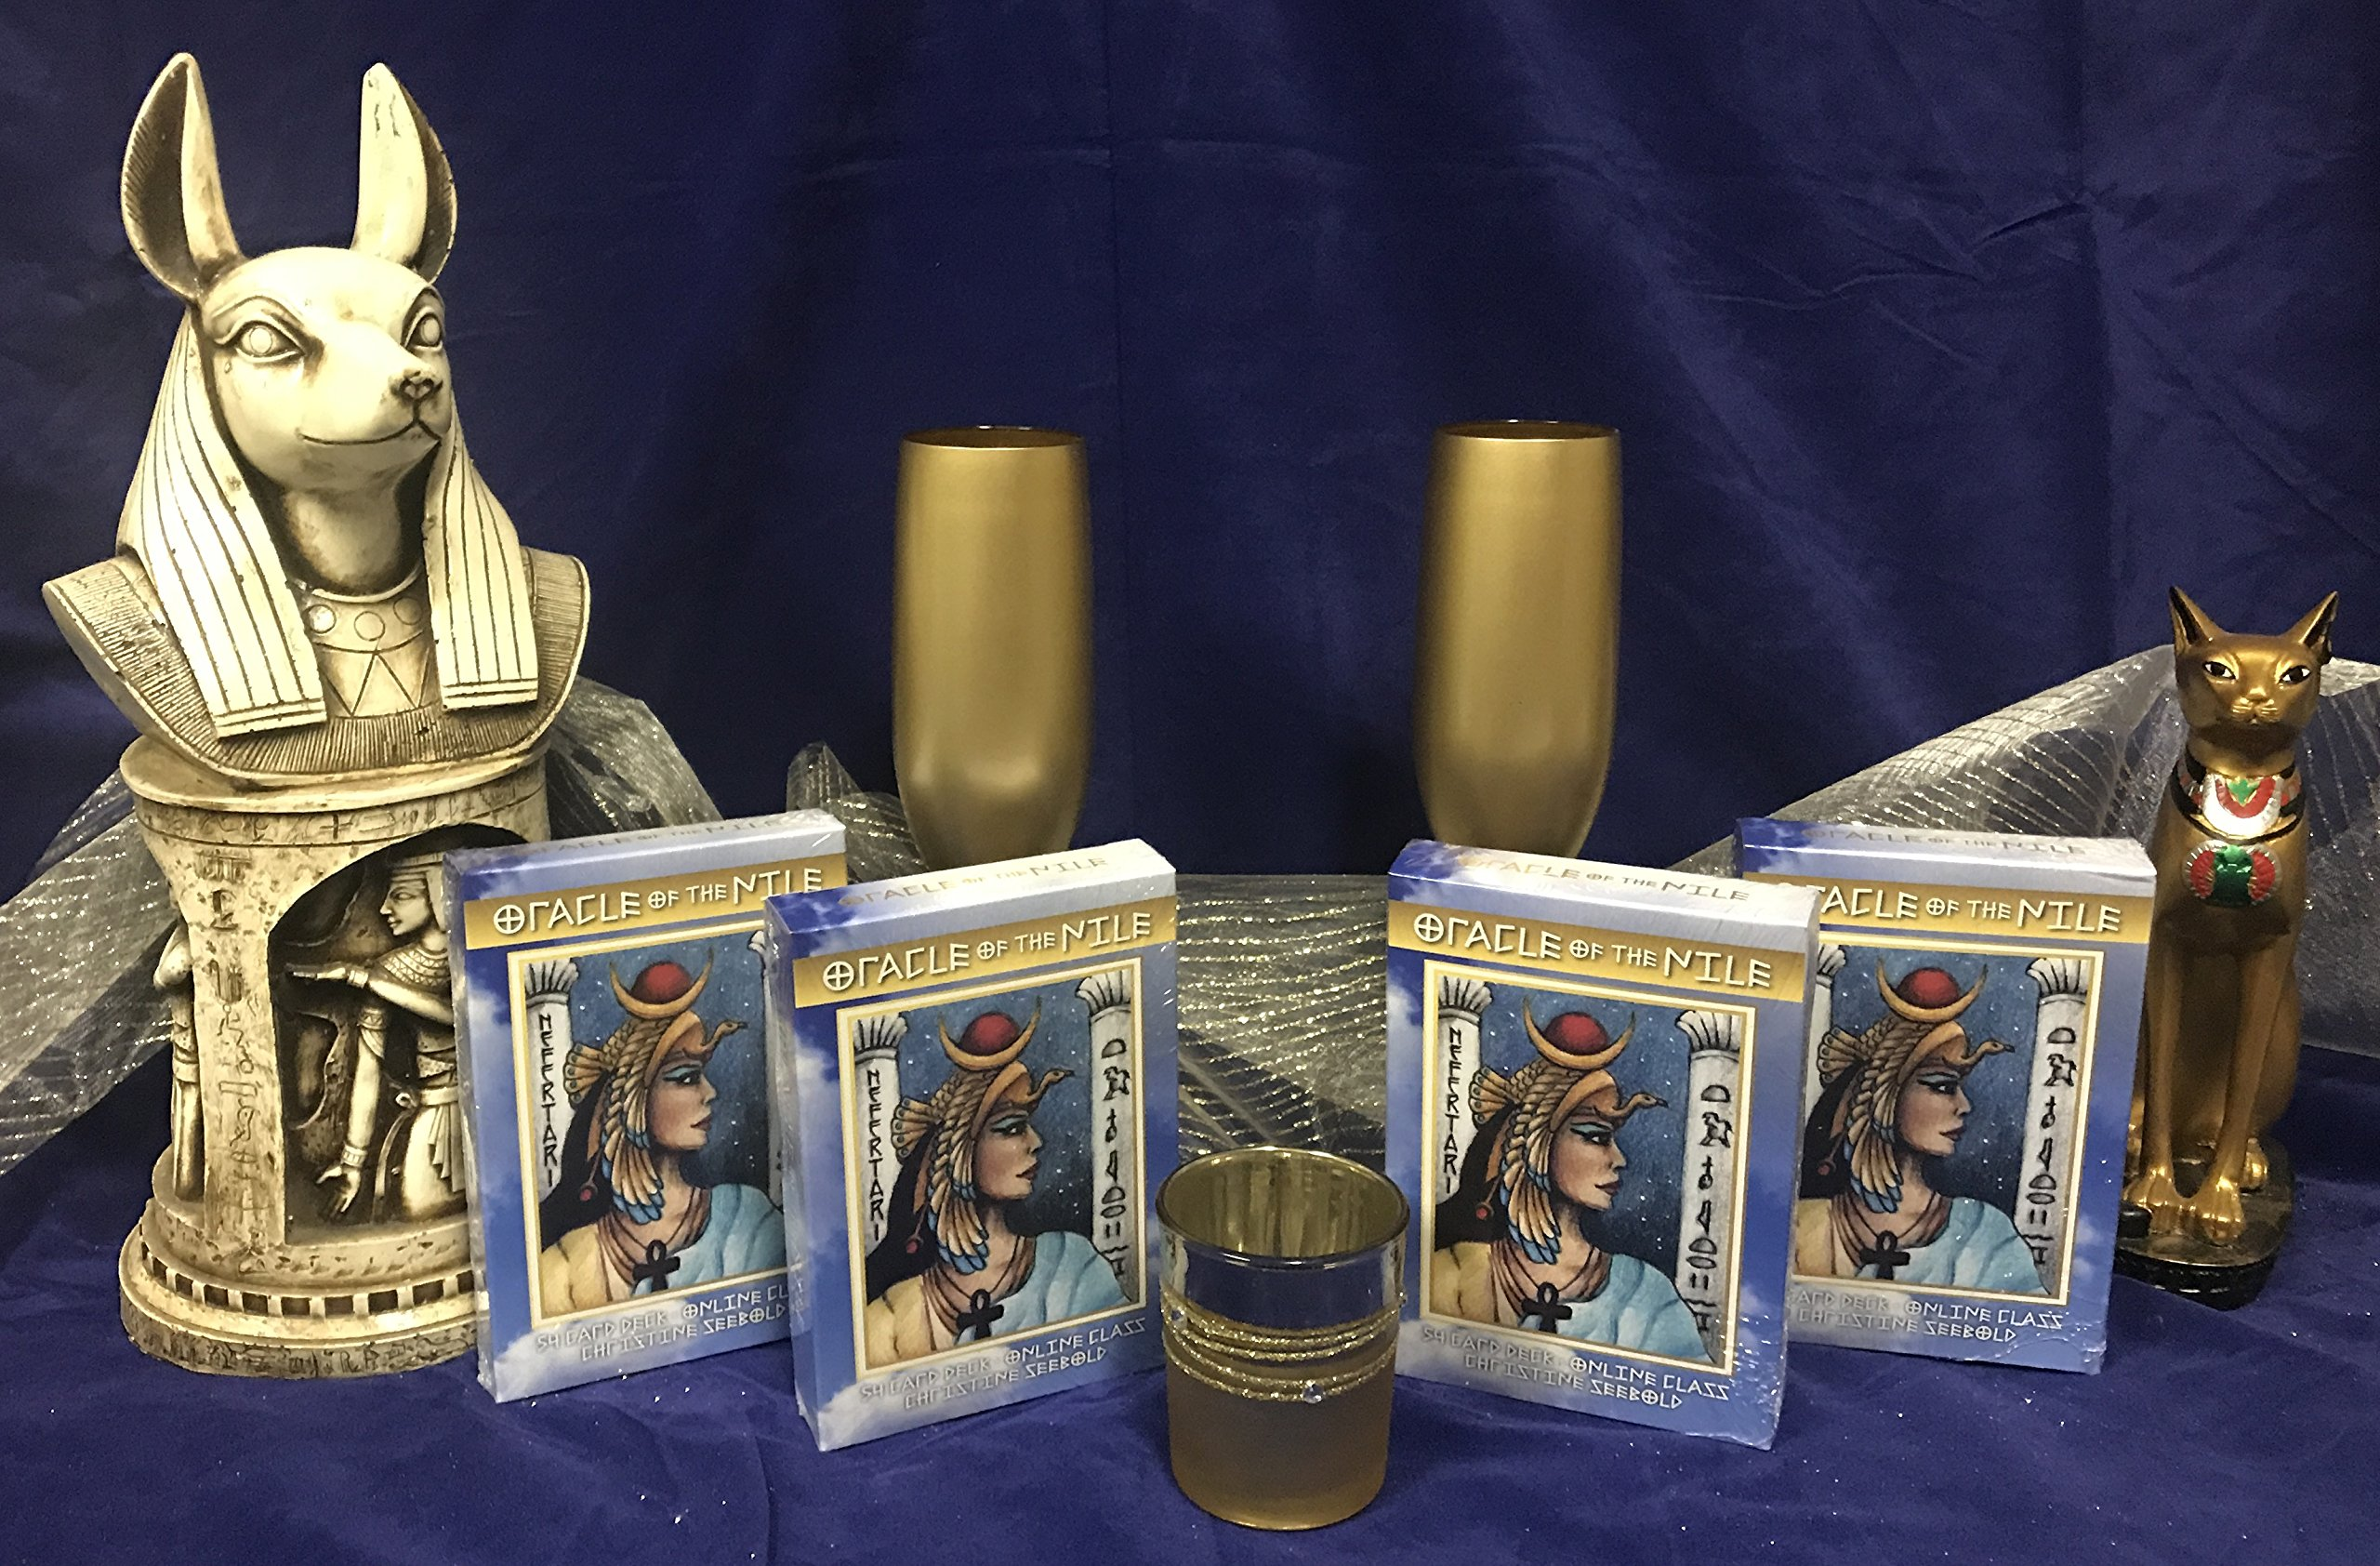 Oracle of the Nile Tarot Cards